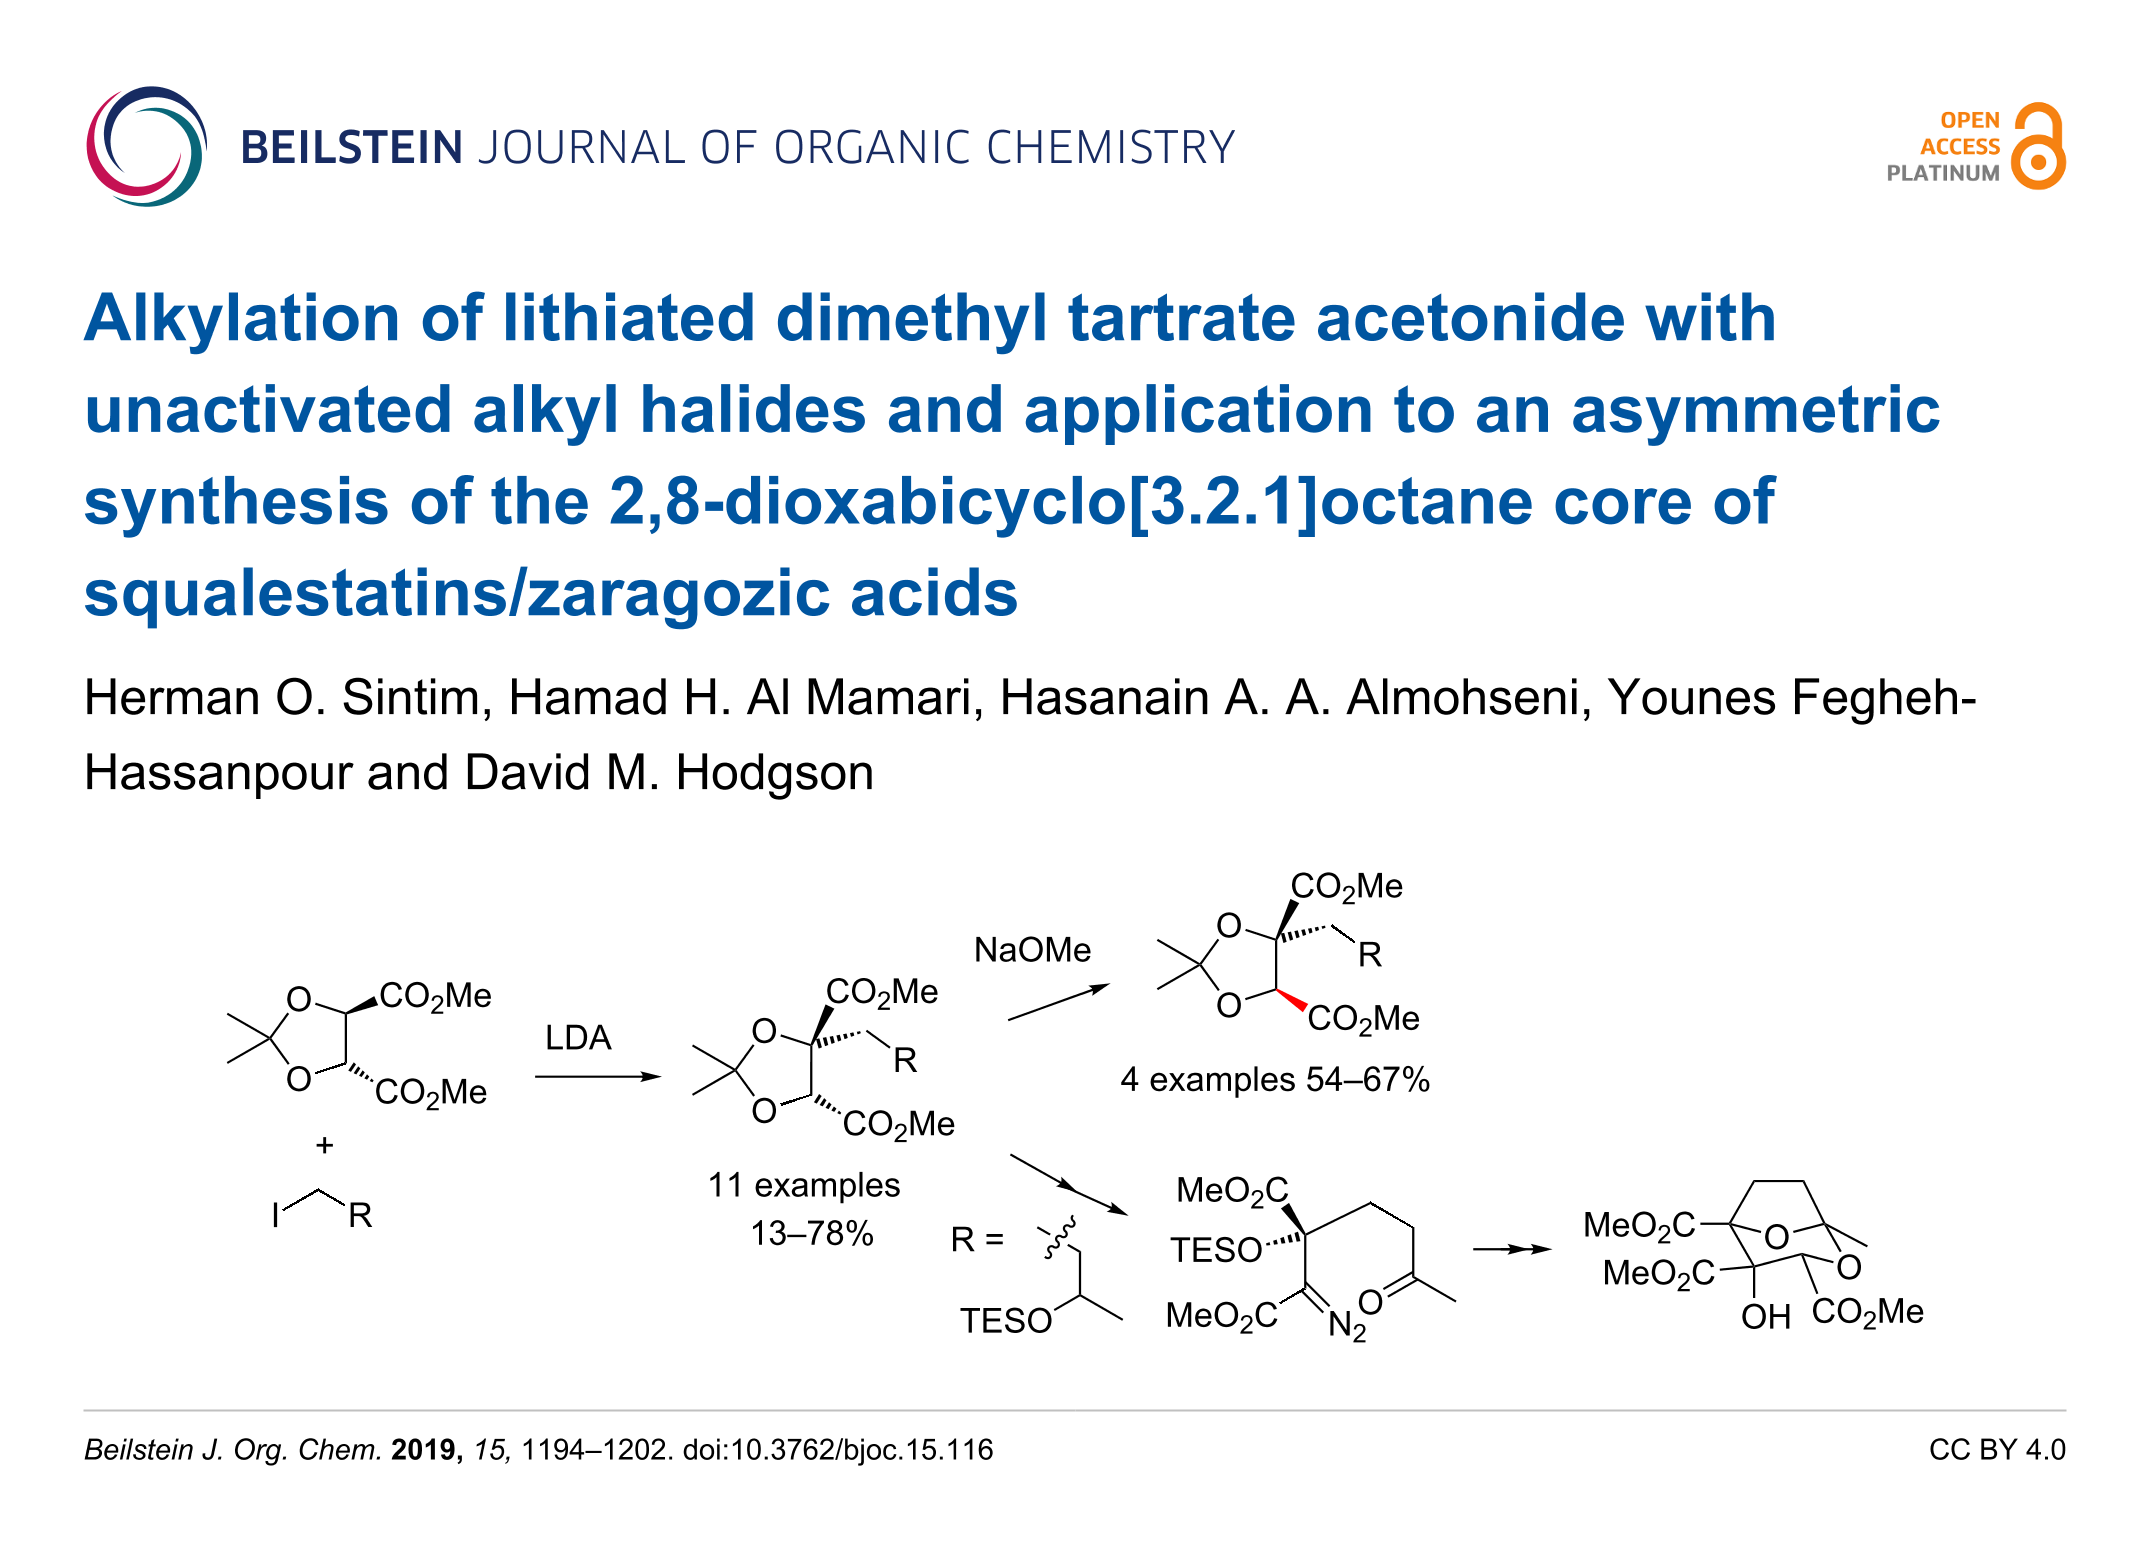 Alkylation of lithiated dimethyl tartrate acetonide with unactivated